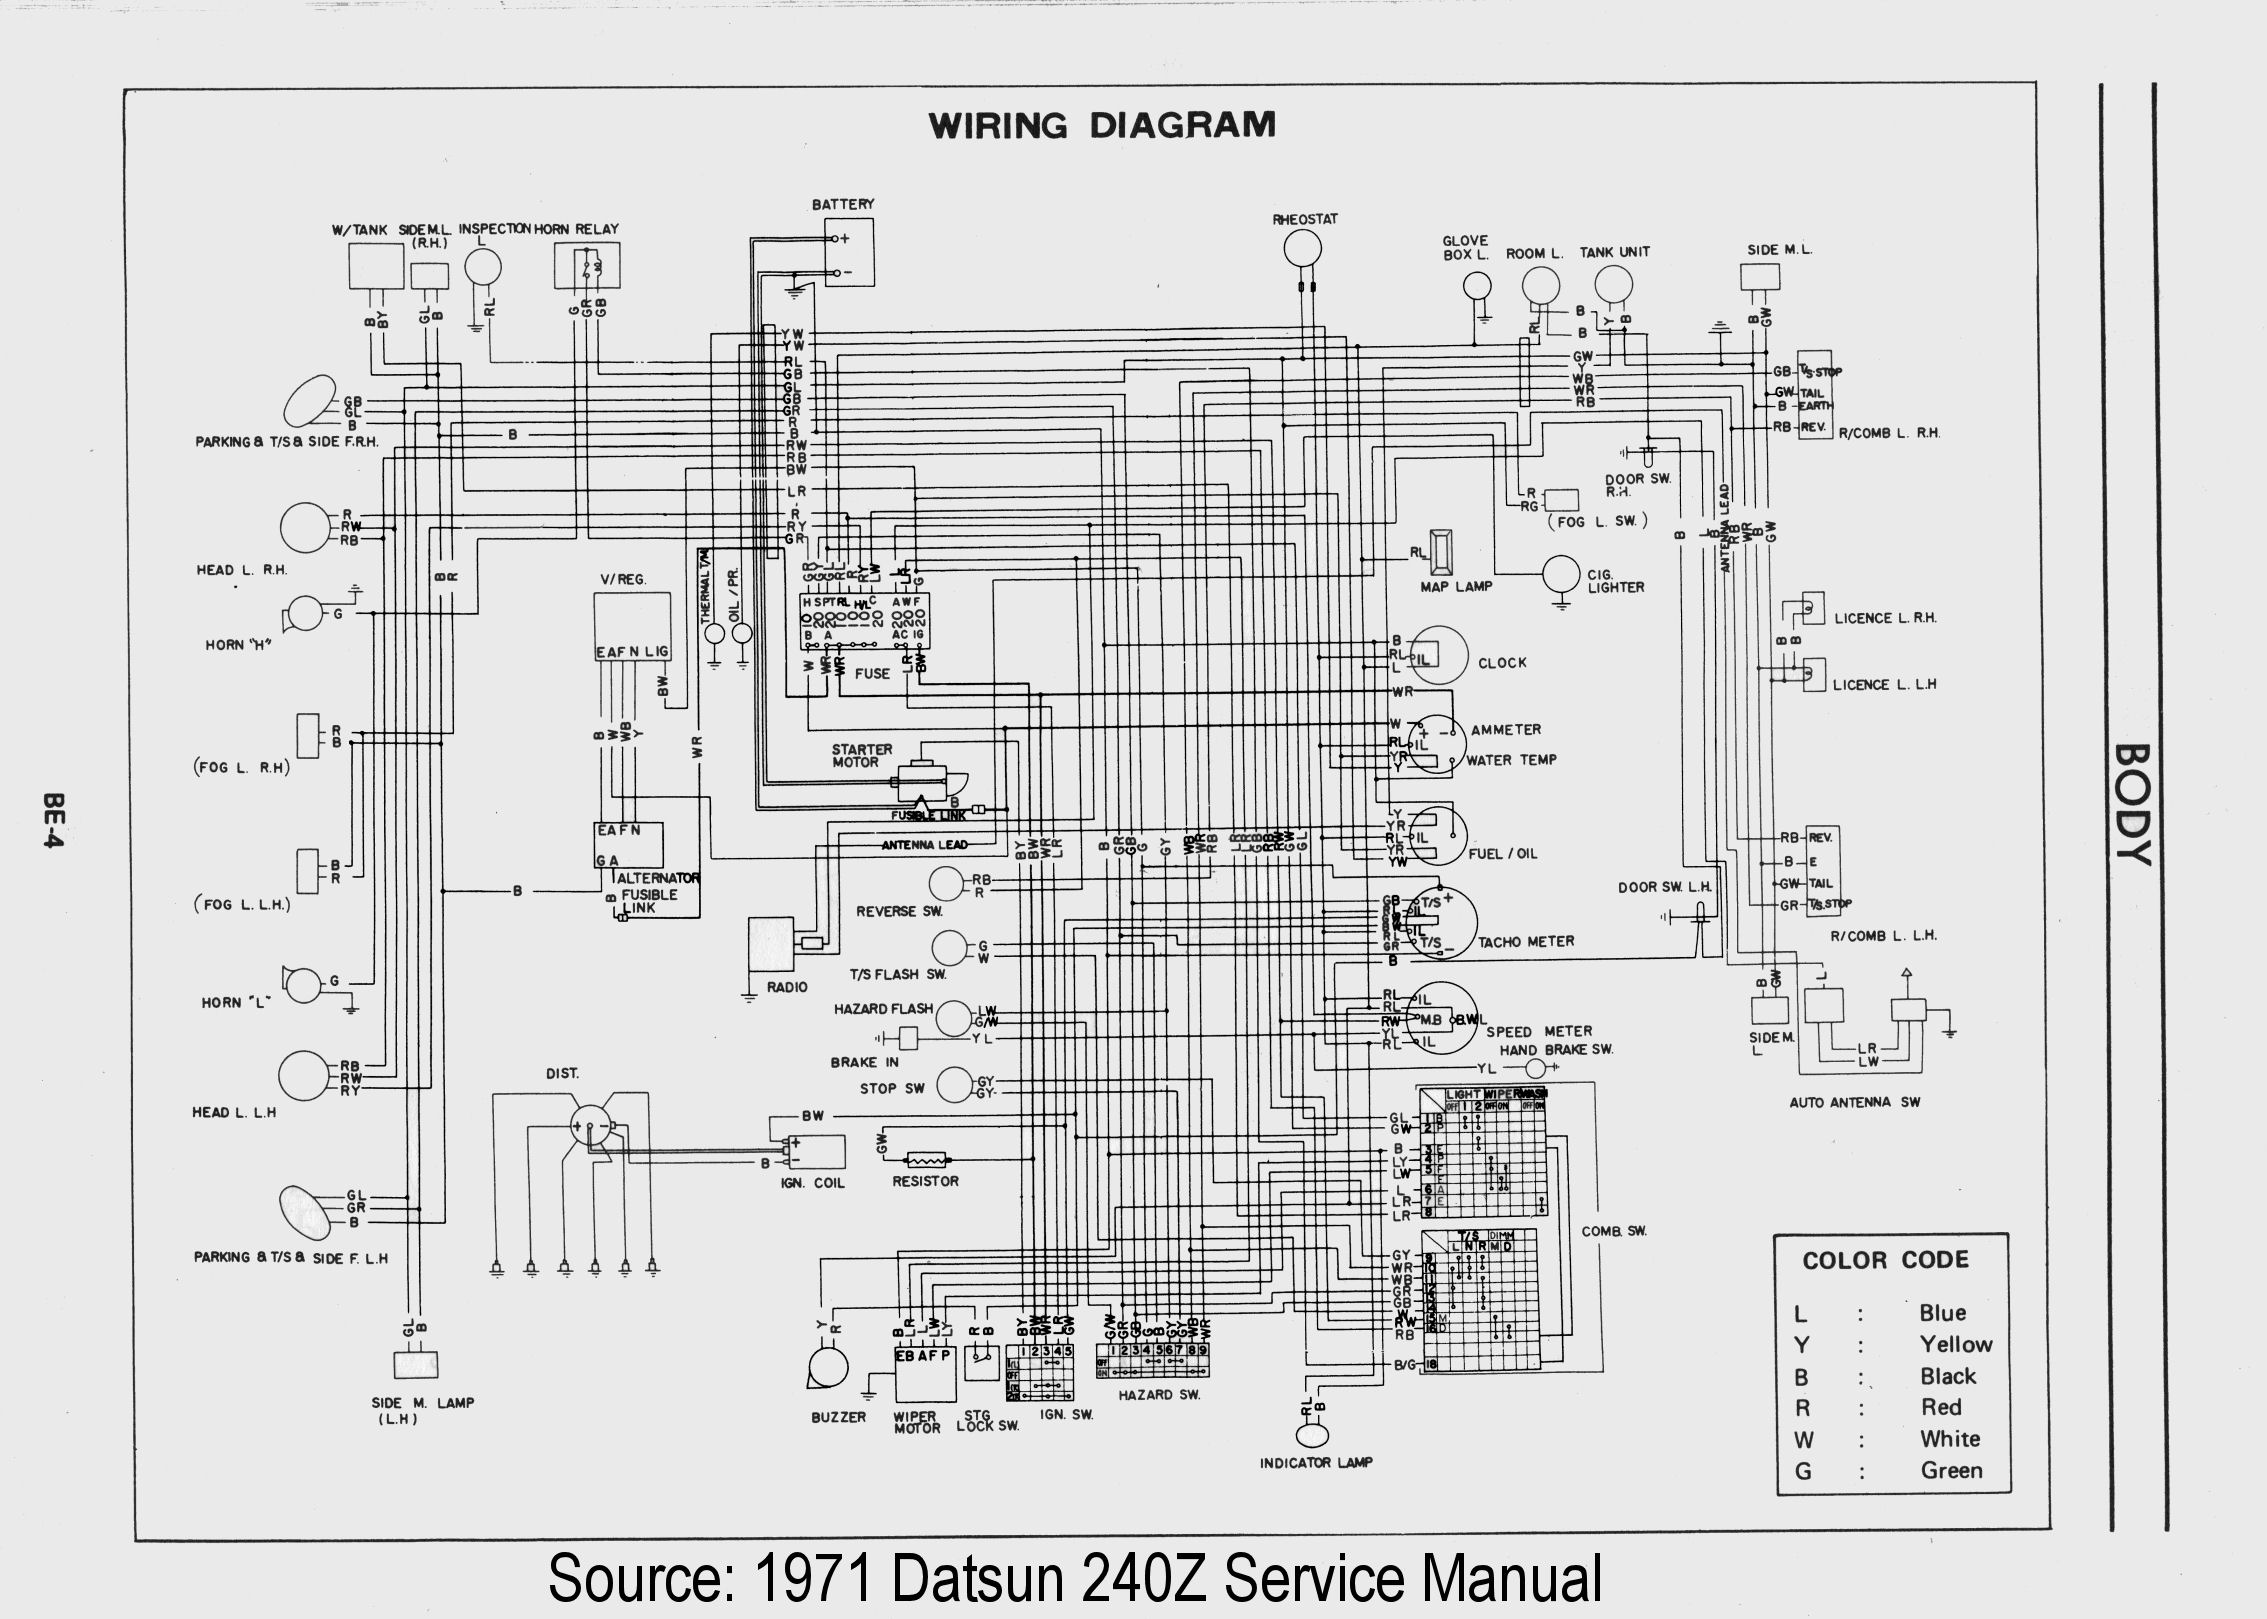 vox headset wiring diagram telephone headset diagram